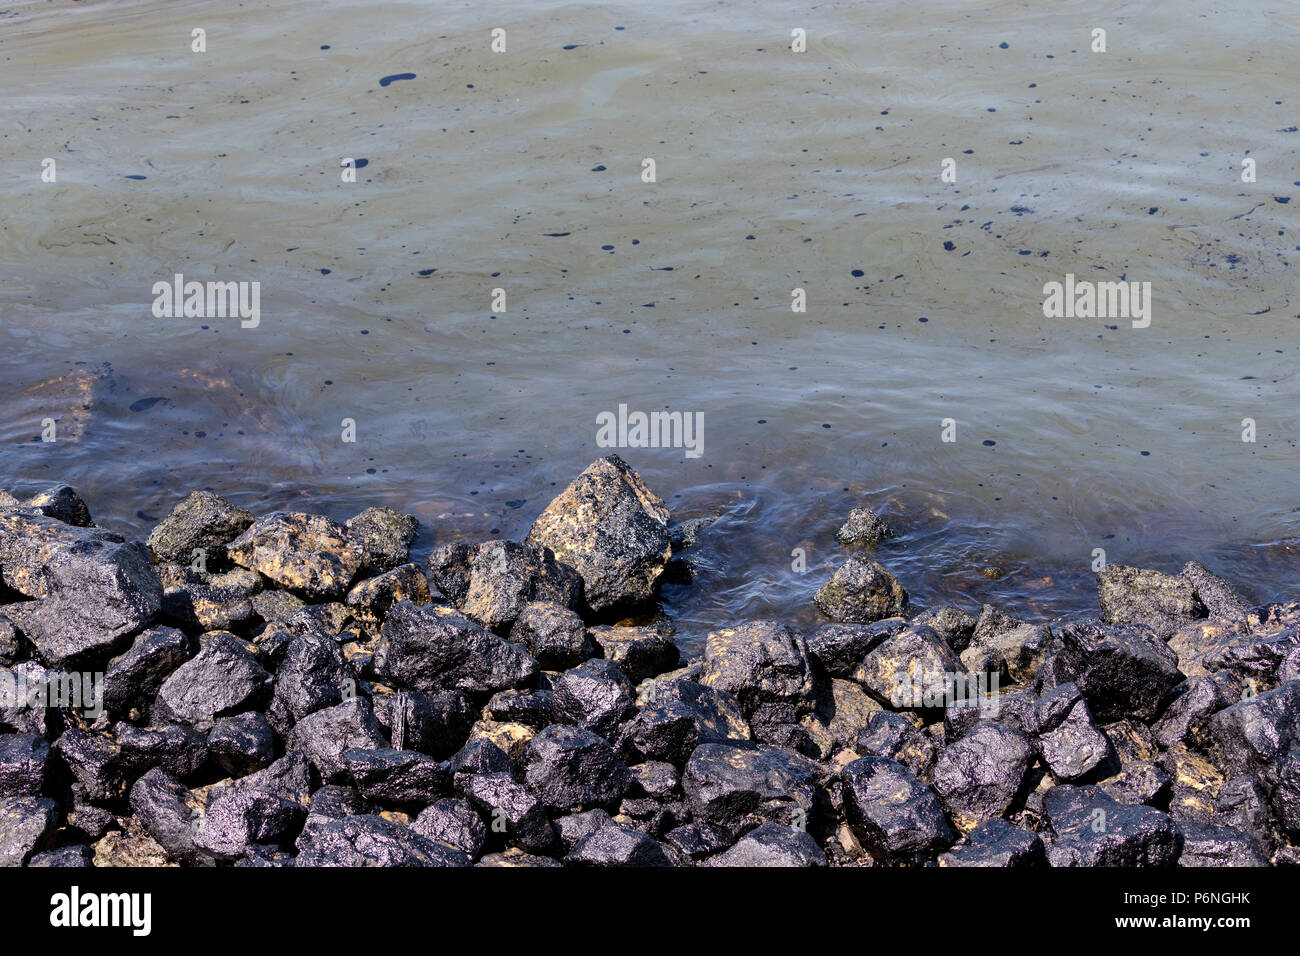 oil pollution at the shore - Stock Image